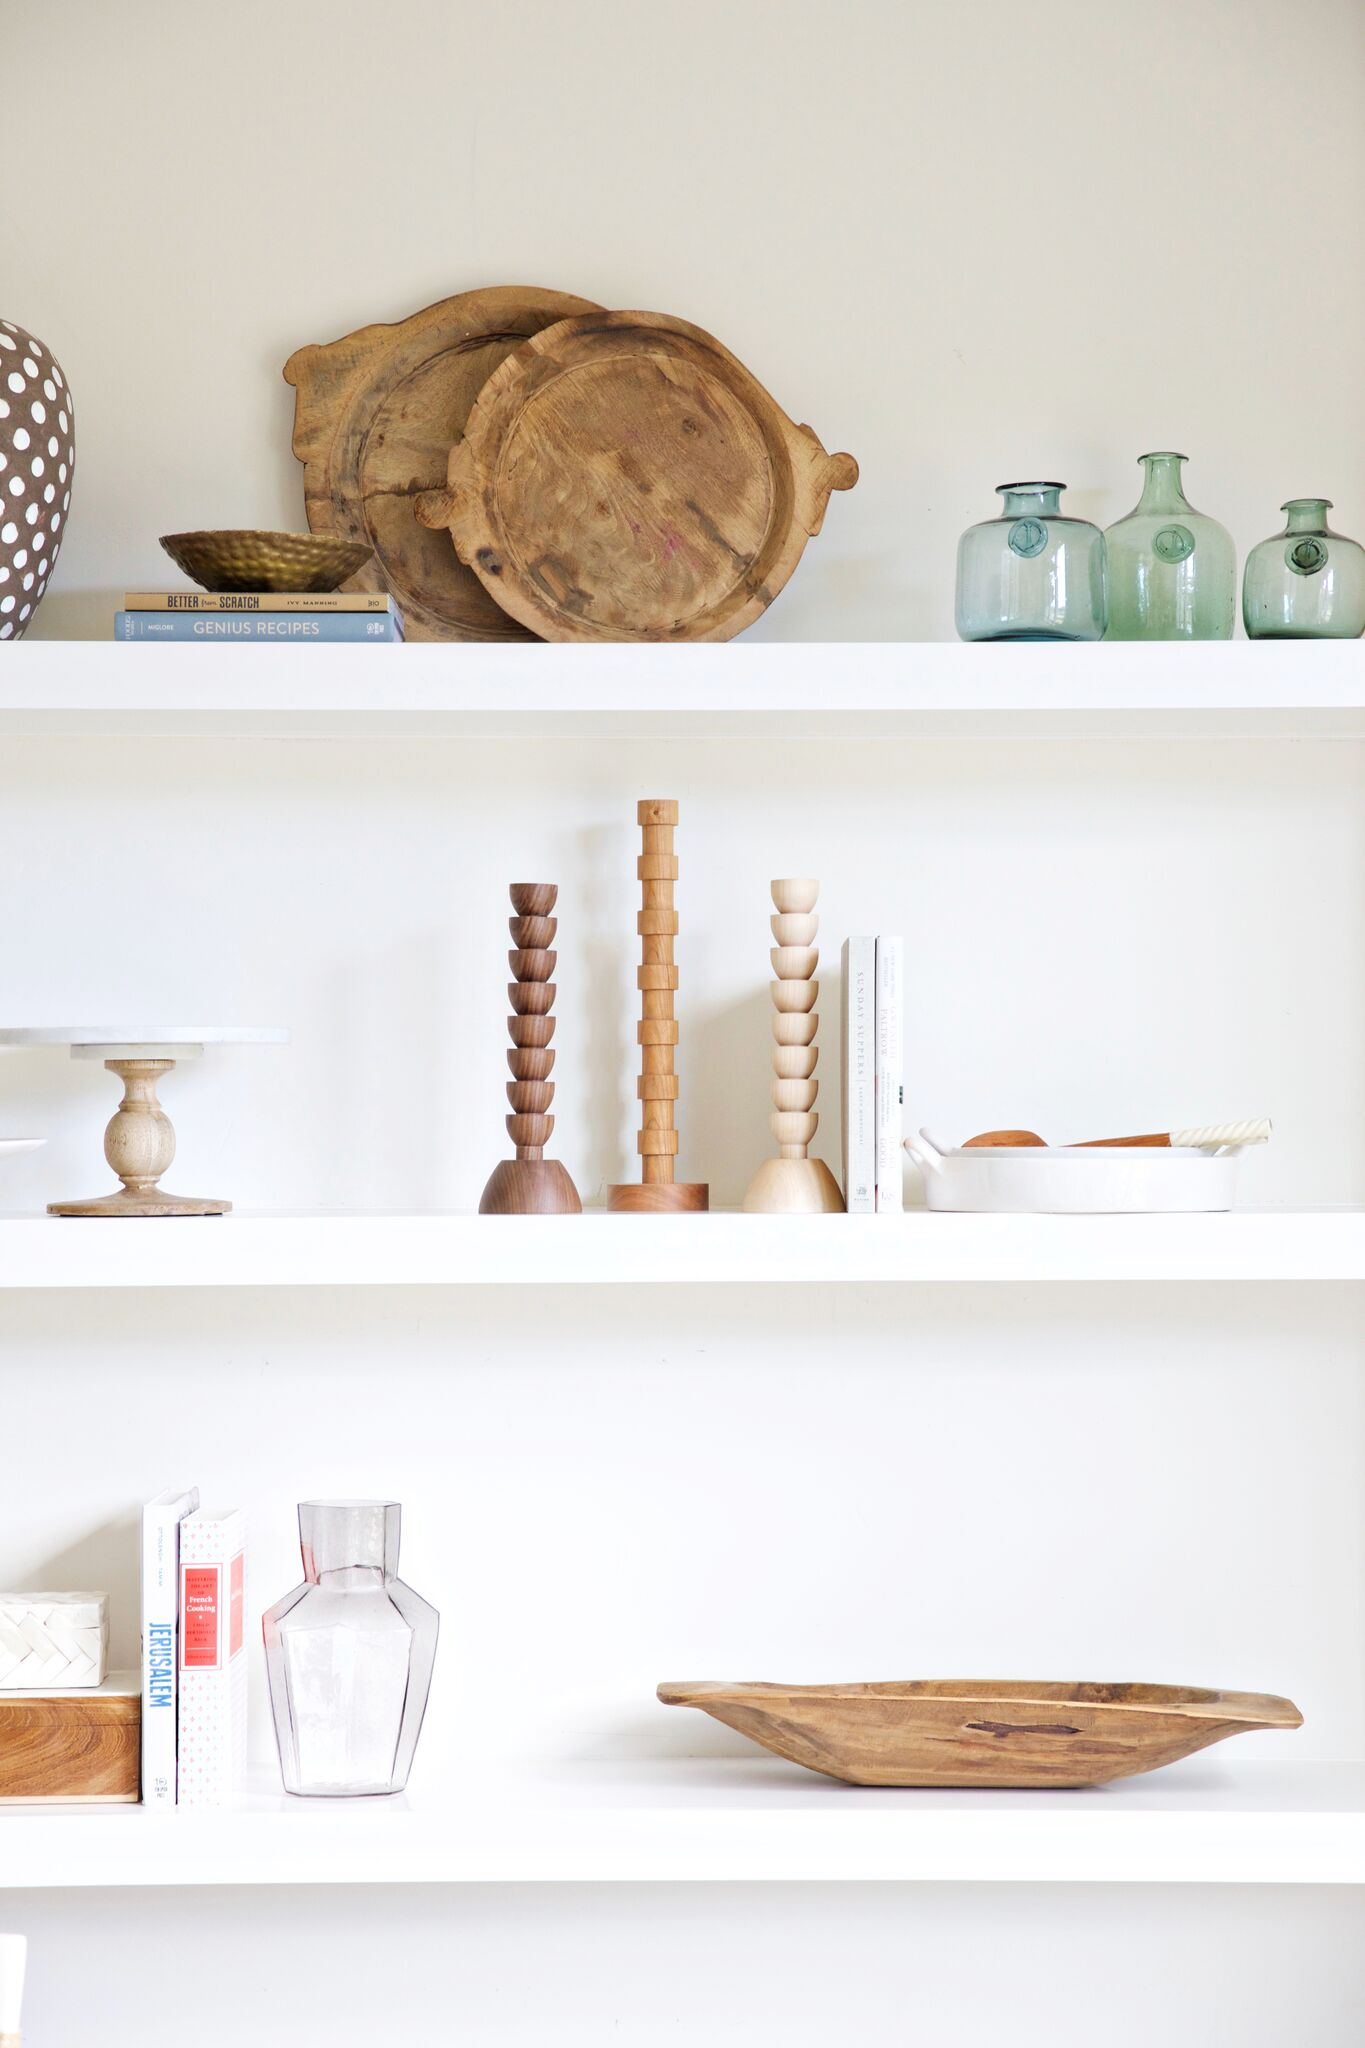 Decorative details on white shelves